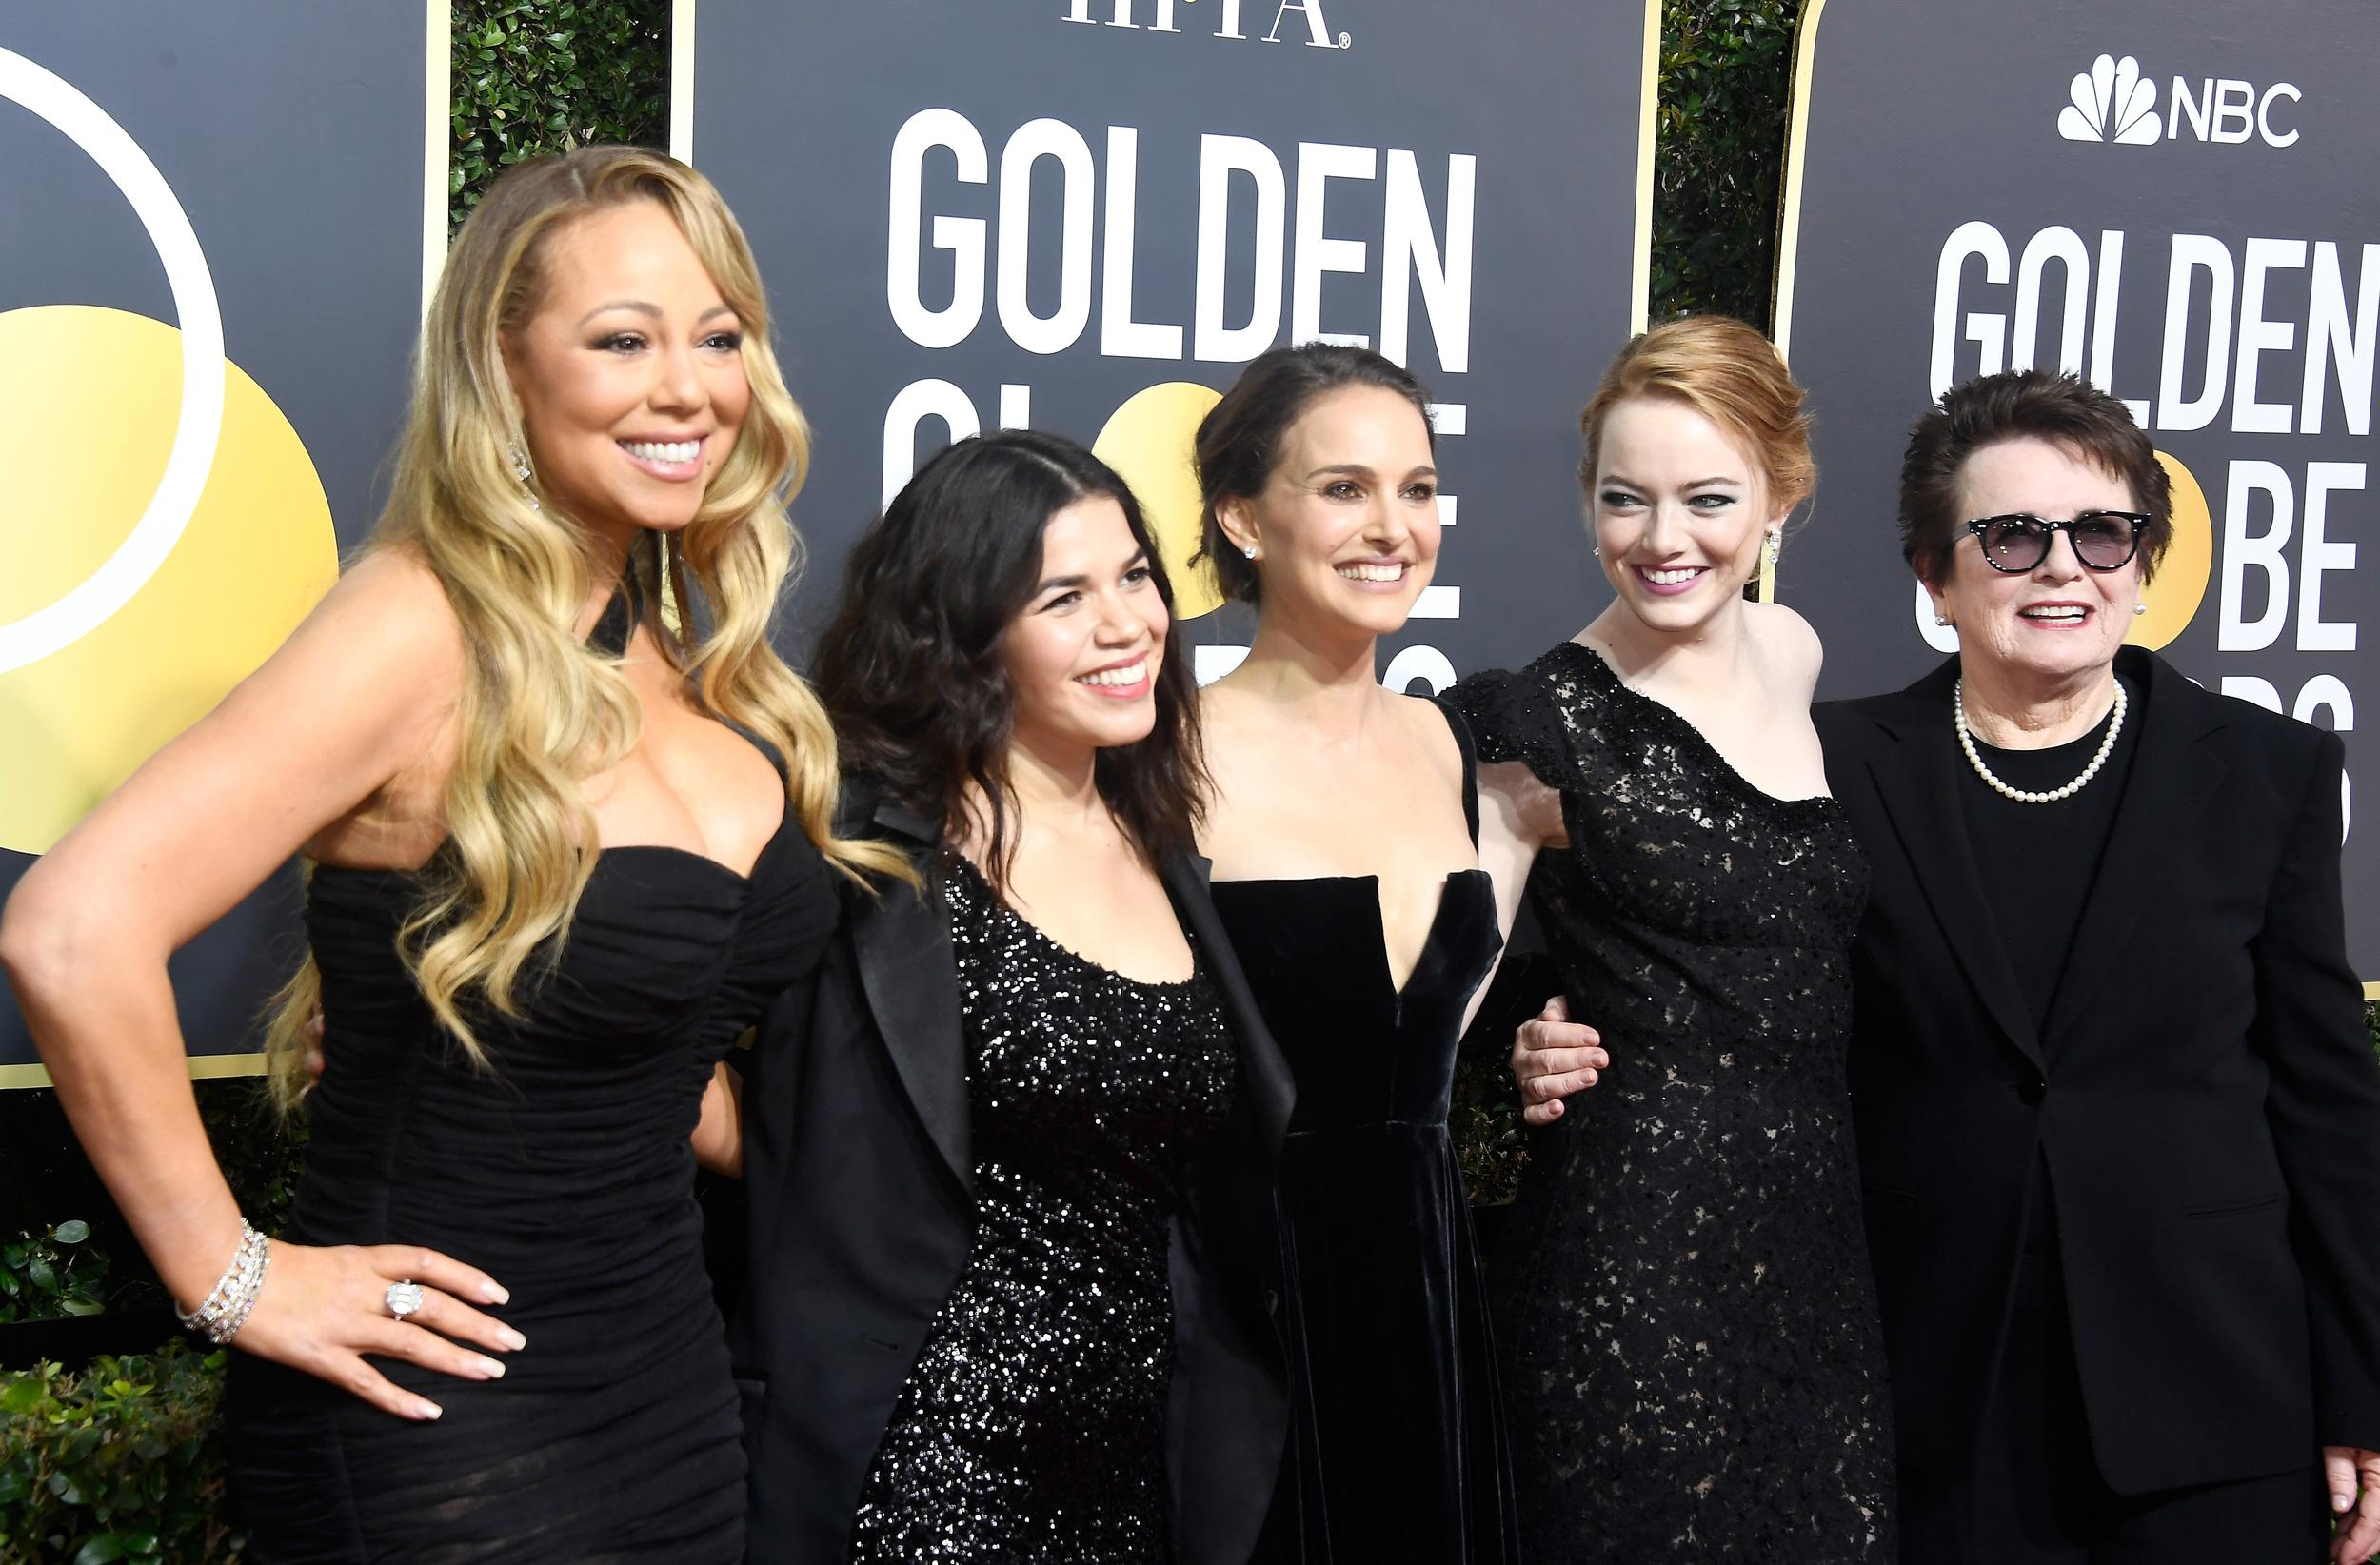 BEVERLY HILLS, CA - JANUARY 07:  (L-R) Singer Mariah Carey, actors America Ferrera, Natalie Portman and Emma Stone, and former tennis player Billie Jean King attend The 75th Annual Golden Globe Awards at The Beverly Hilton Hotel on January 7, 2018 in Beverly Hills, California.  (Photo by Frazer Harrison/Getty Images)